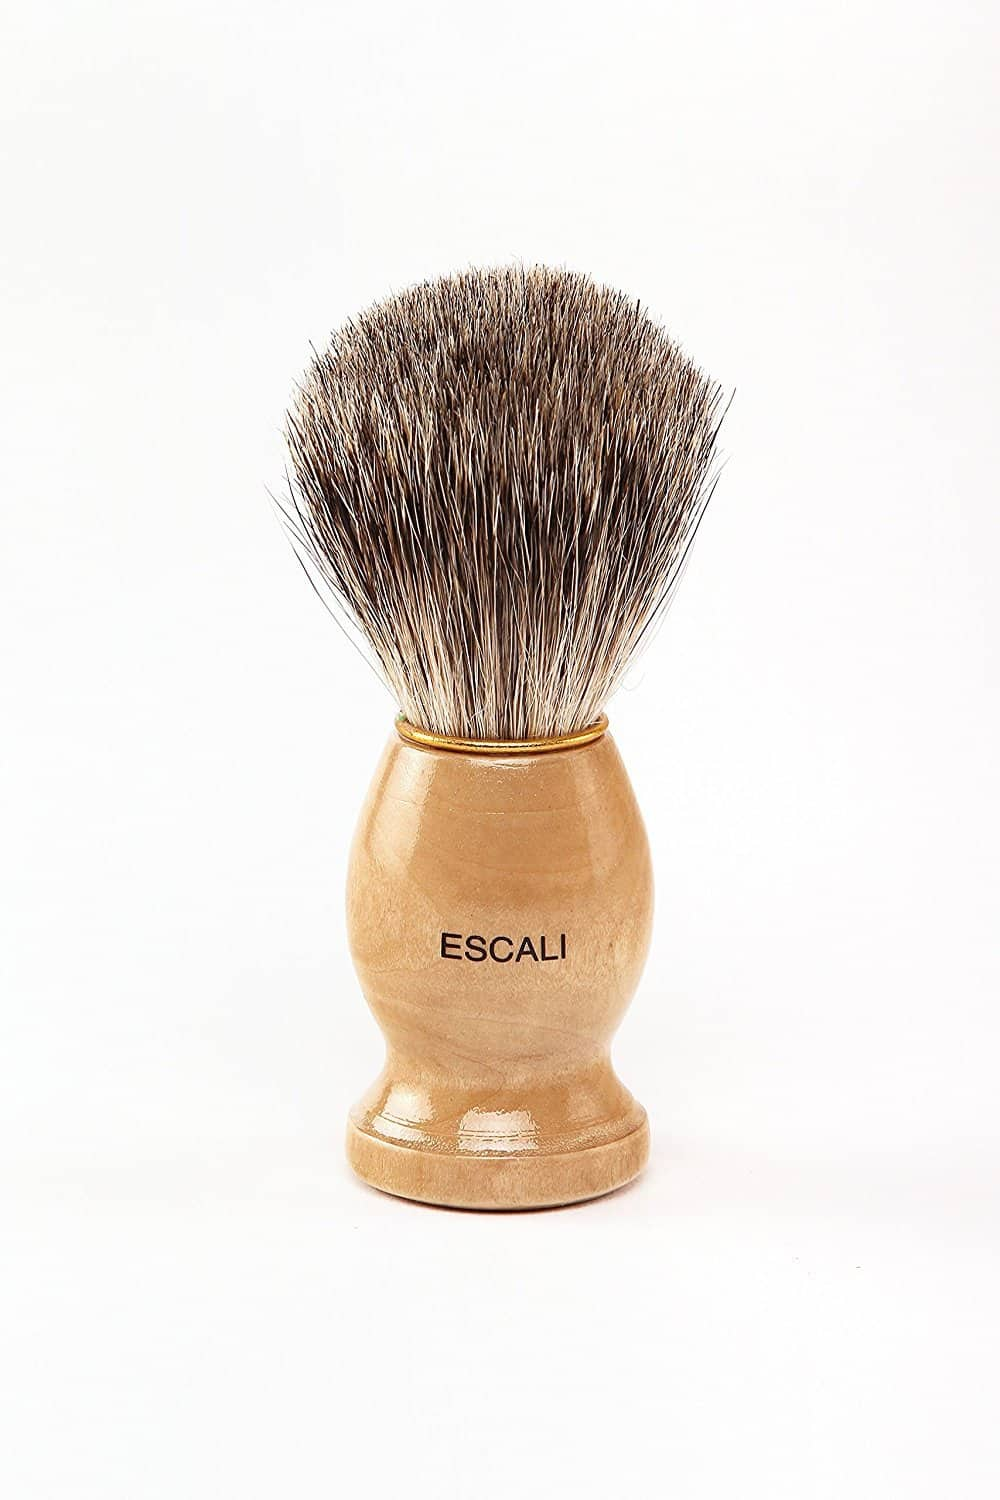 81j1Ctrz9YL._SL1500_ Top 12 Shaving Brushes: Buying Guide and Review